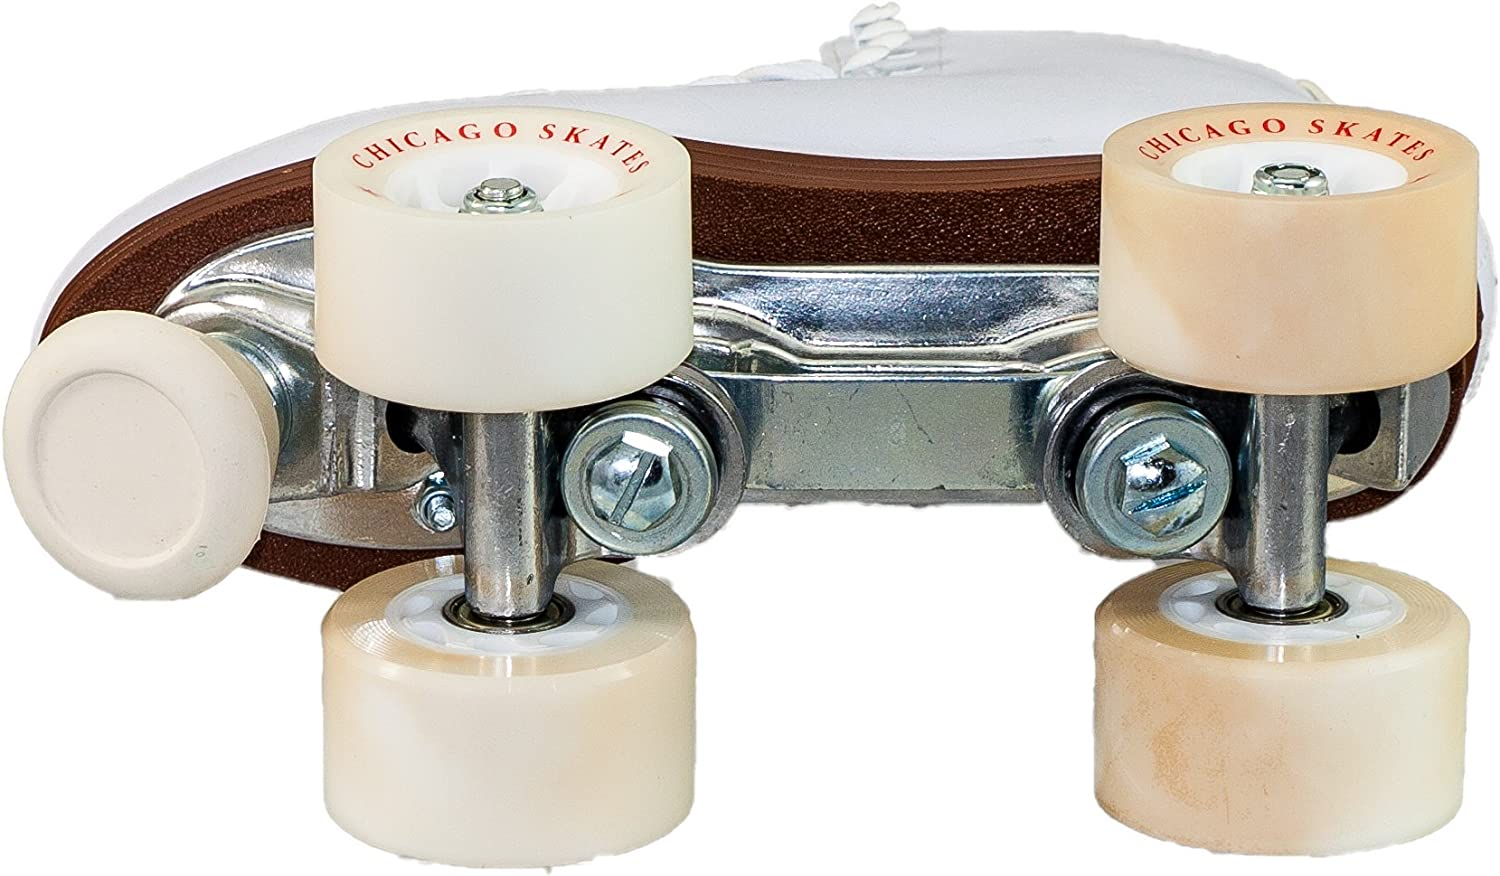 Classic White Quad Skates Chicago Womens Premium Leather Lined Rink Roller Skate